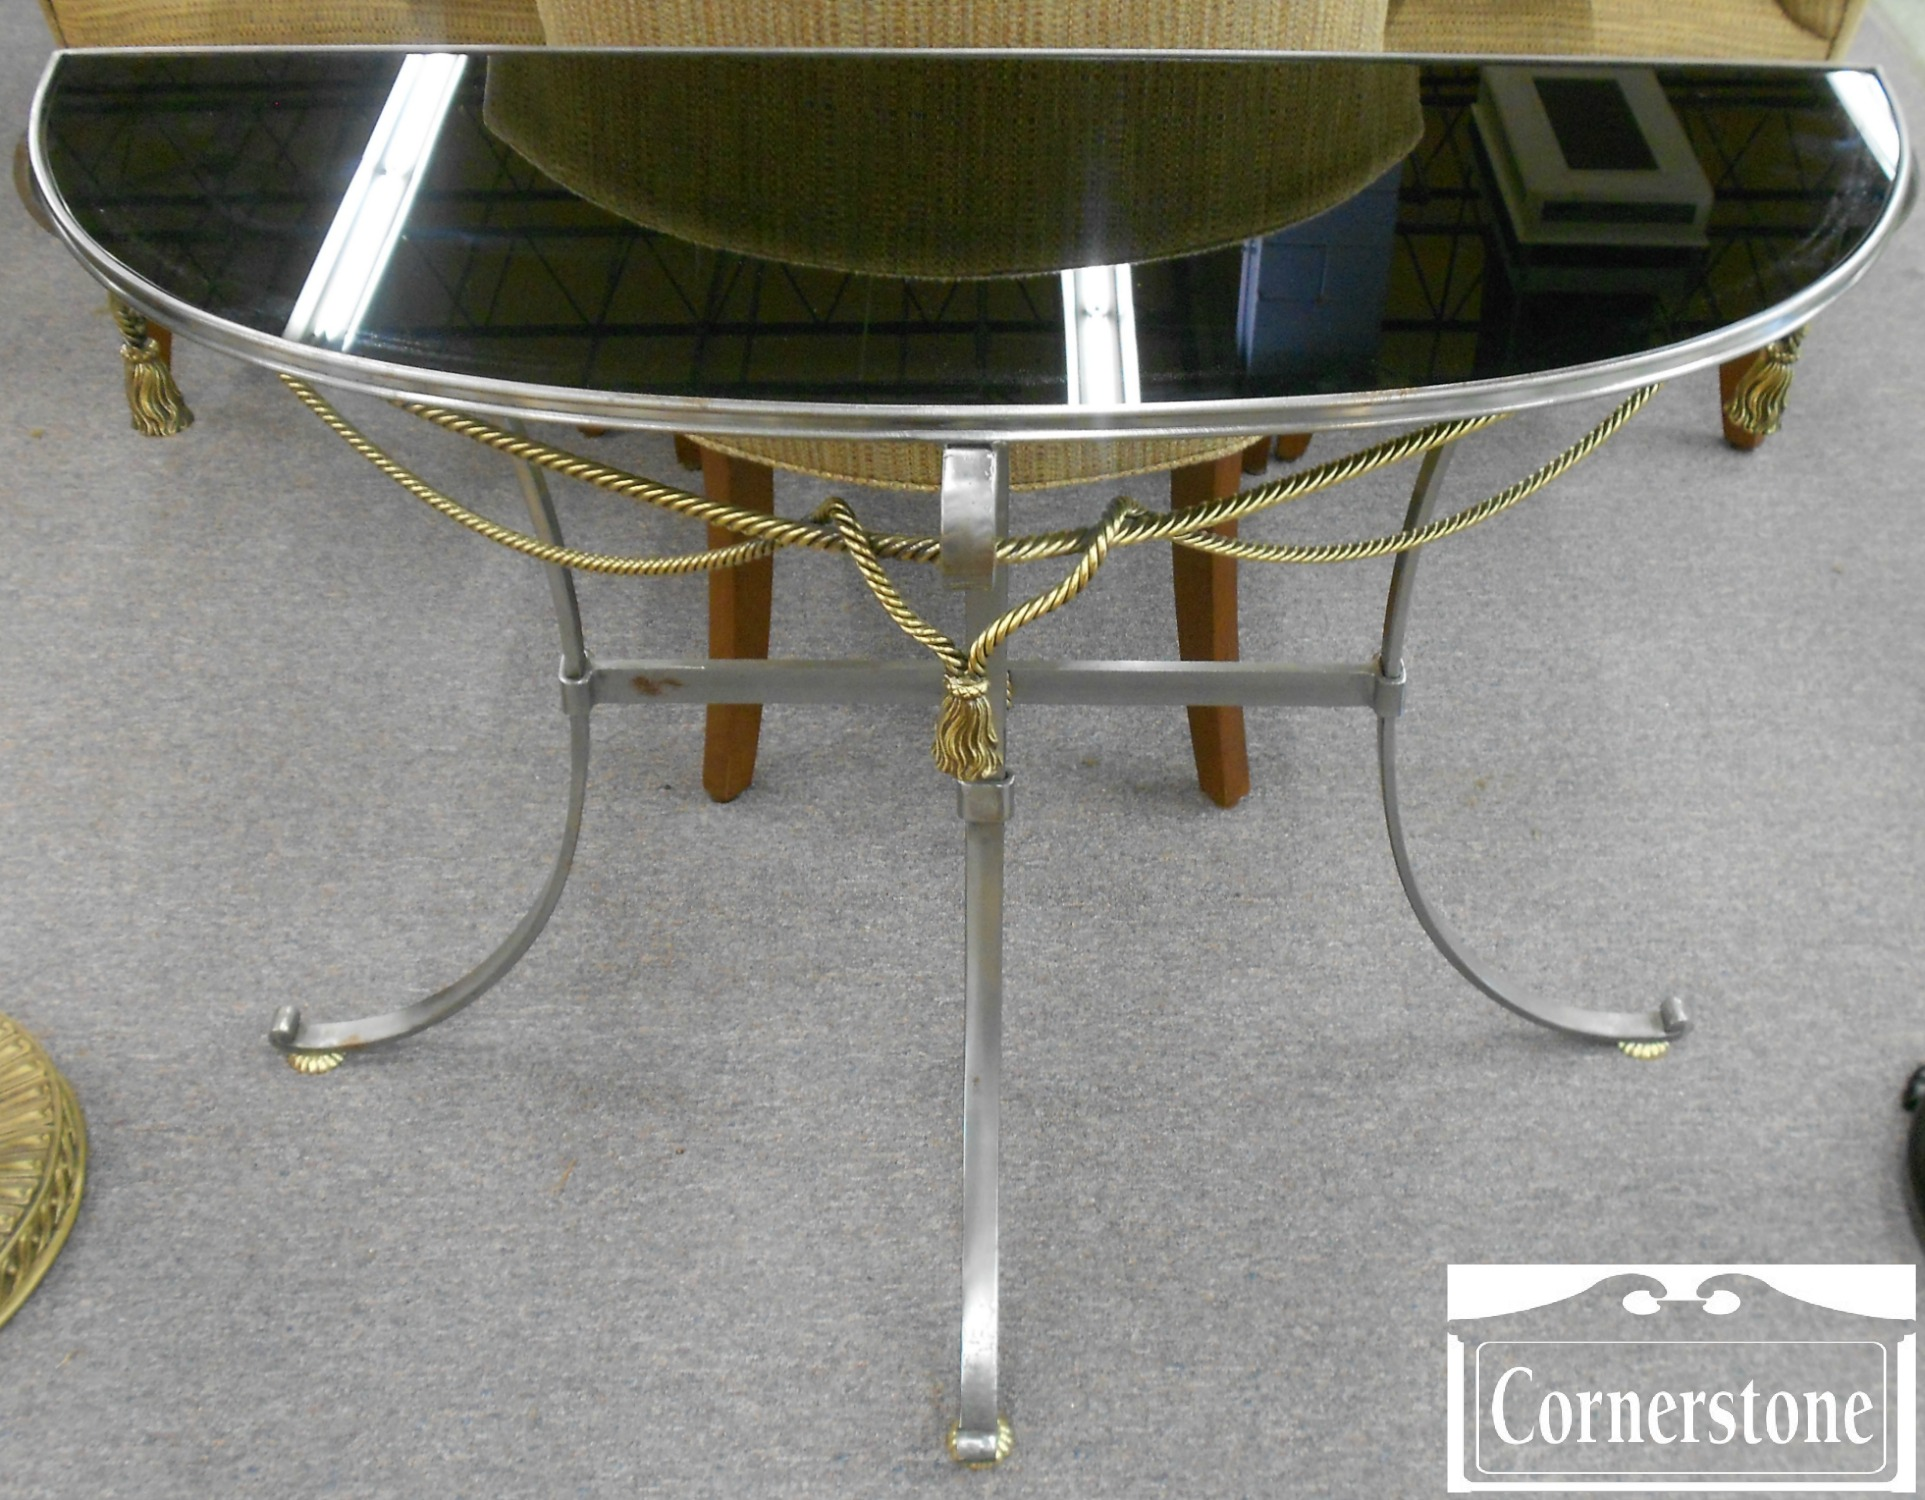 5370-553 Metal Base Demilune Wall Table with Black Glass Insert